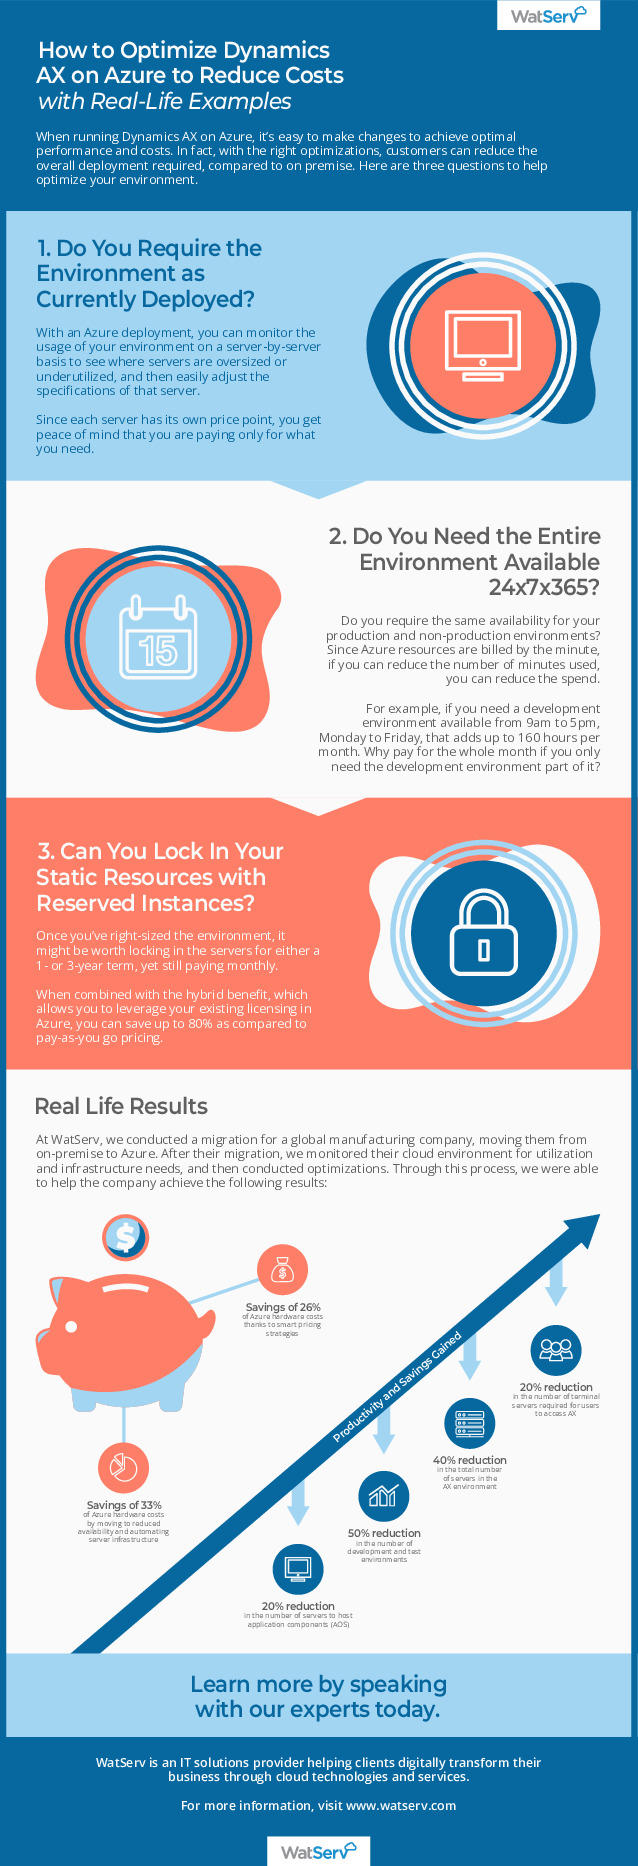 (Infographic) How to Optimize Dynamics AX on Azure to Reduce Costs with Real-Life Examples